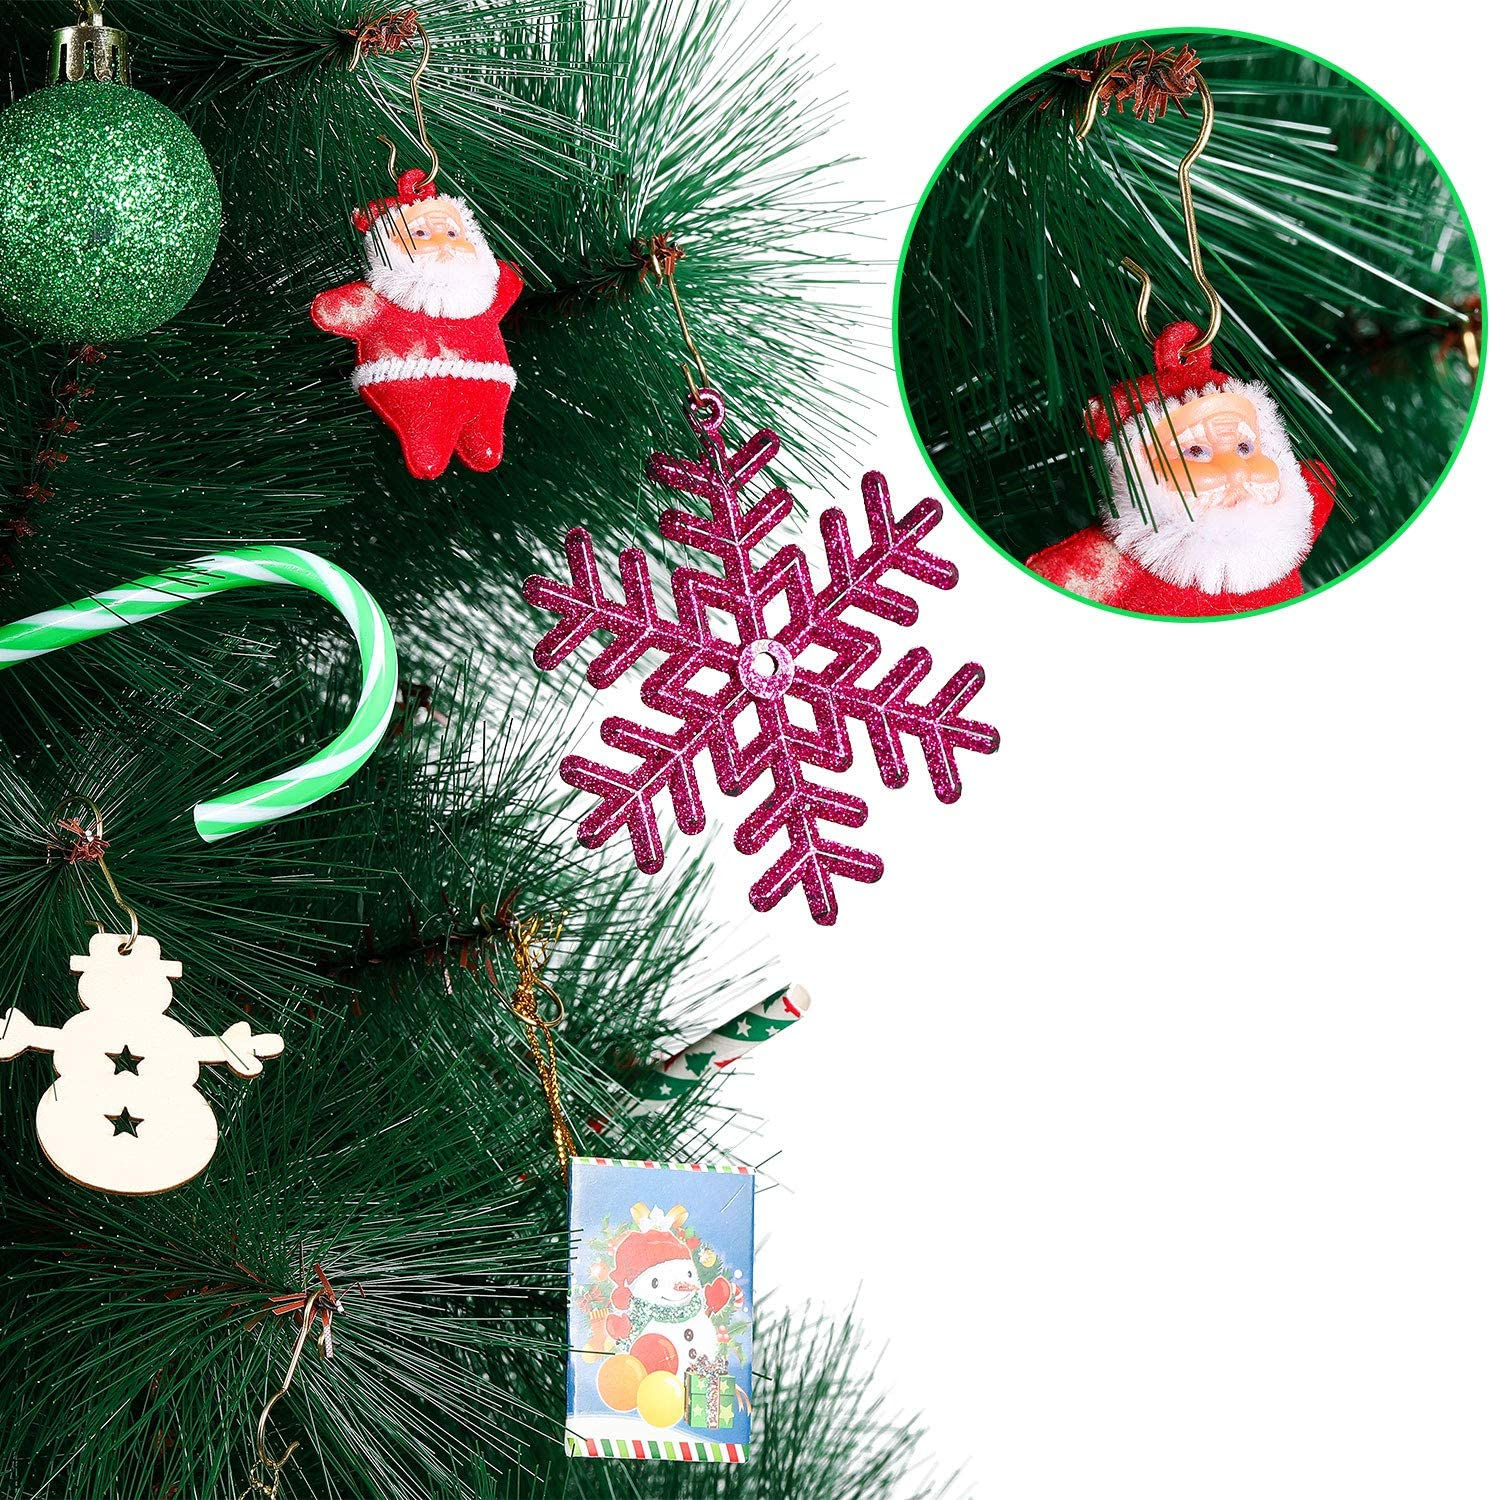 Gold,240 Pieces Ripeng Christmas Ornament Hooks Christmas Tree Ornament Hanger Metal Hanging Hook with Storage Box for Christmas Tree Decorations